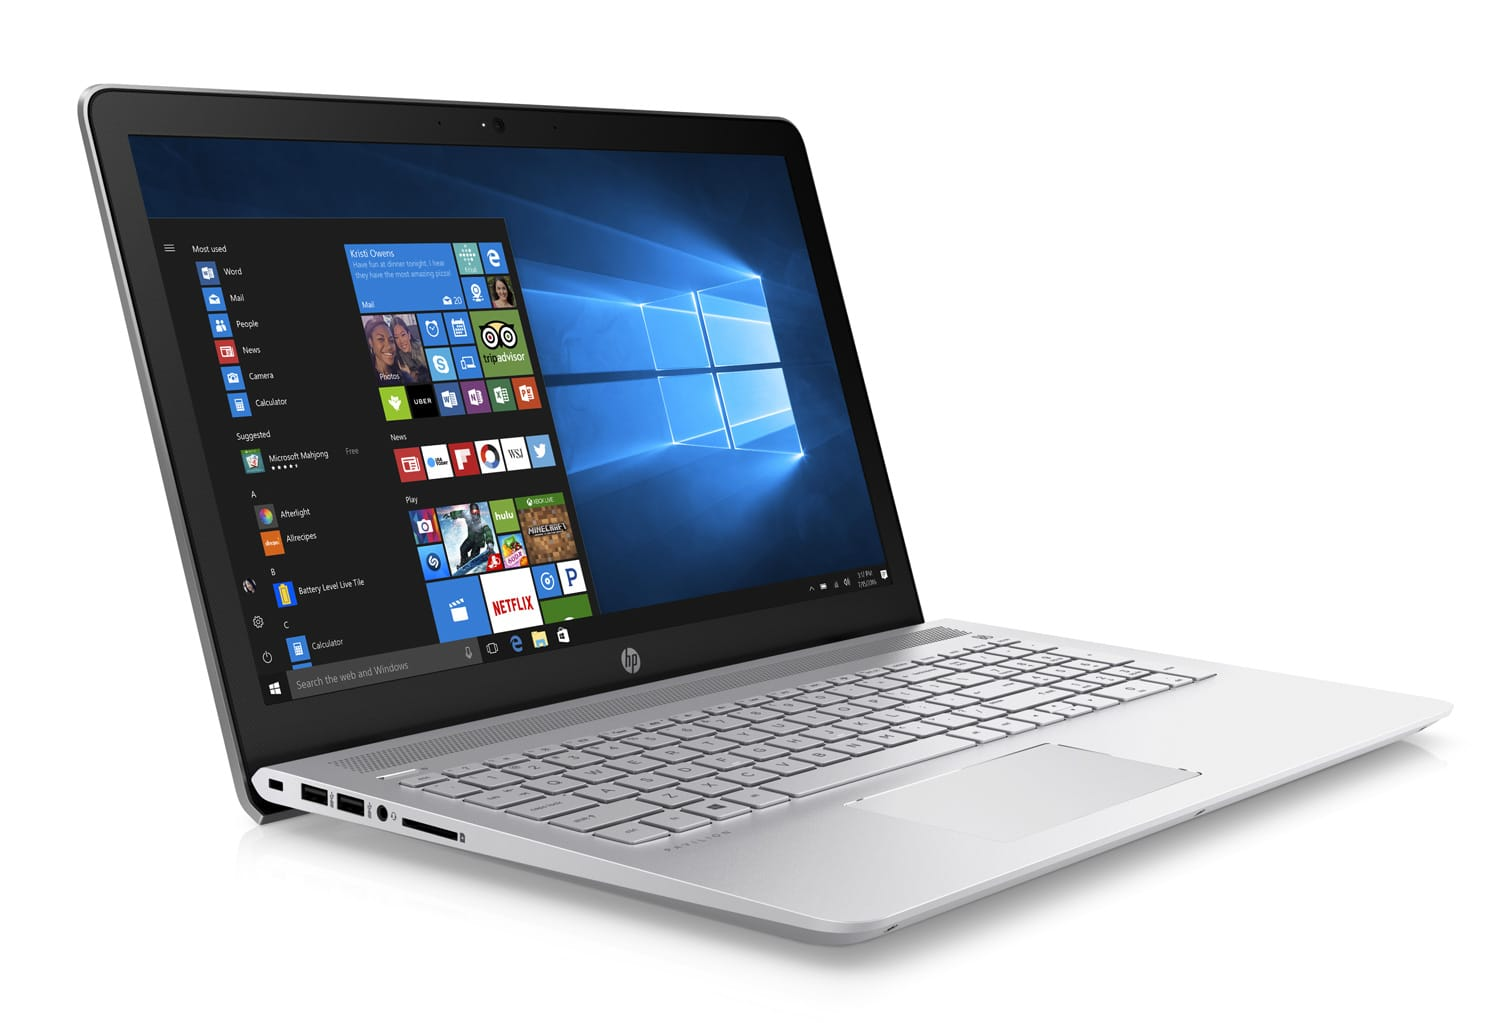 HP Pavilion 15-cc506nf, ultrabook 15 pouces Full HD i7 Kaby 940MX SSD à 849€